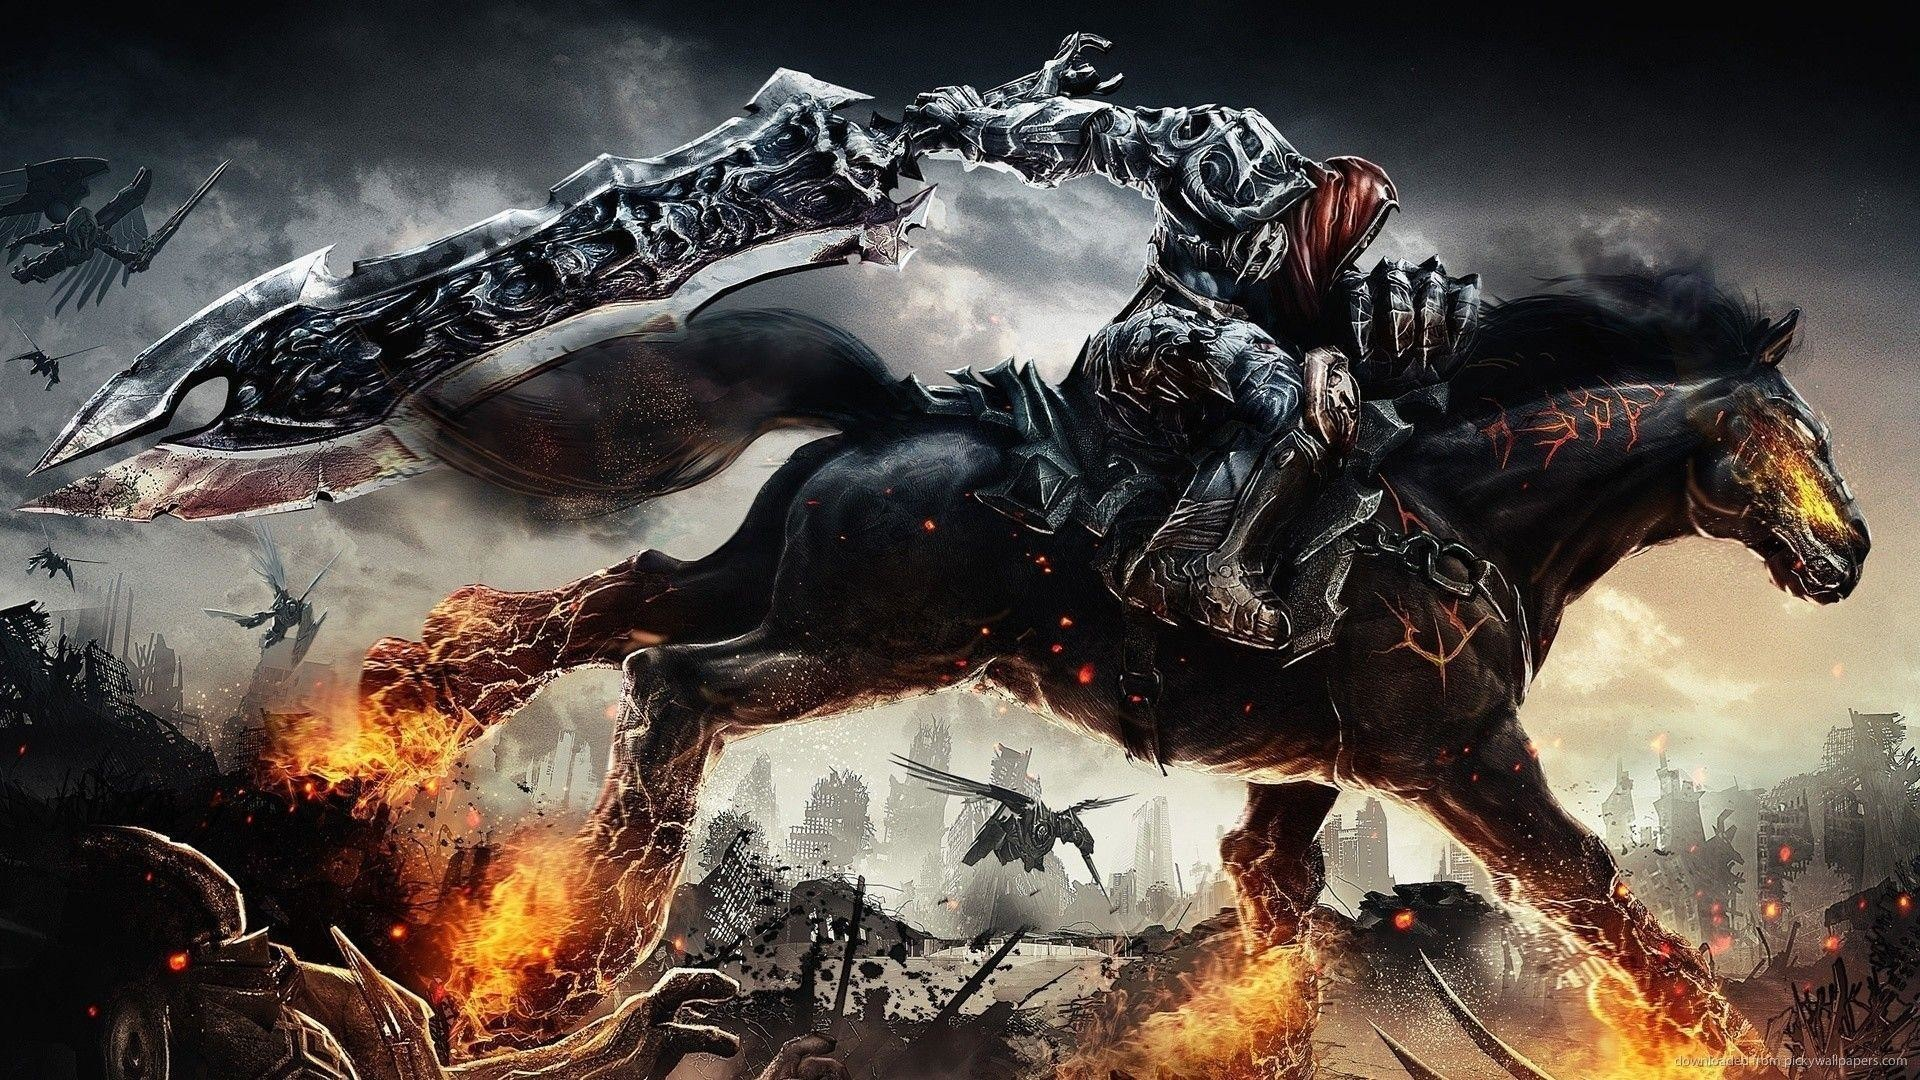 Res: 1920x1080, The Darksiders Concept Art Wallpaper For Blackberry Curve